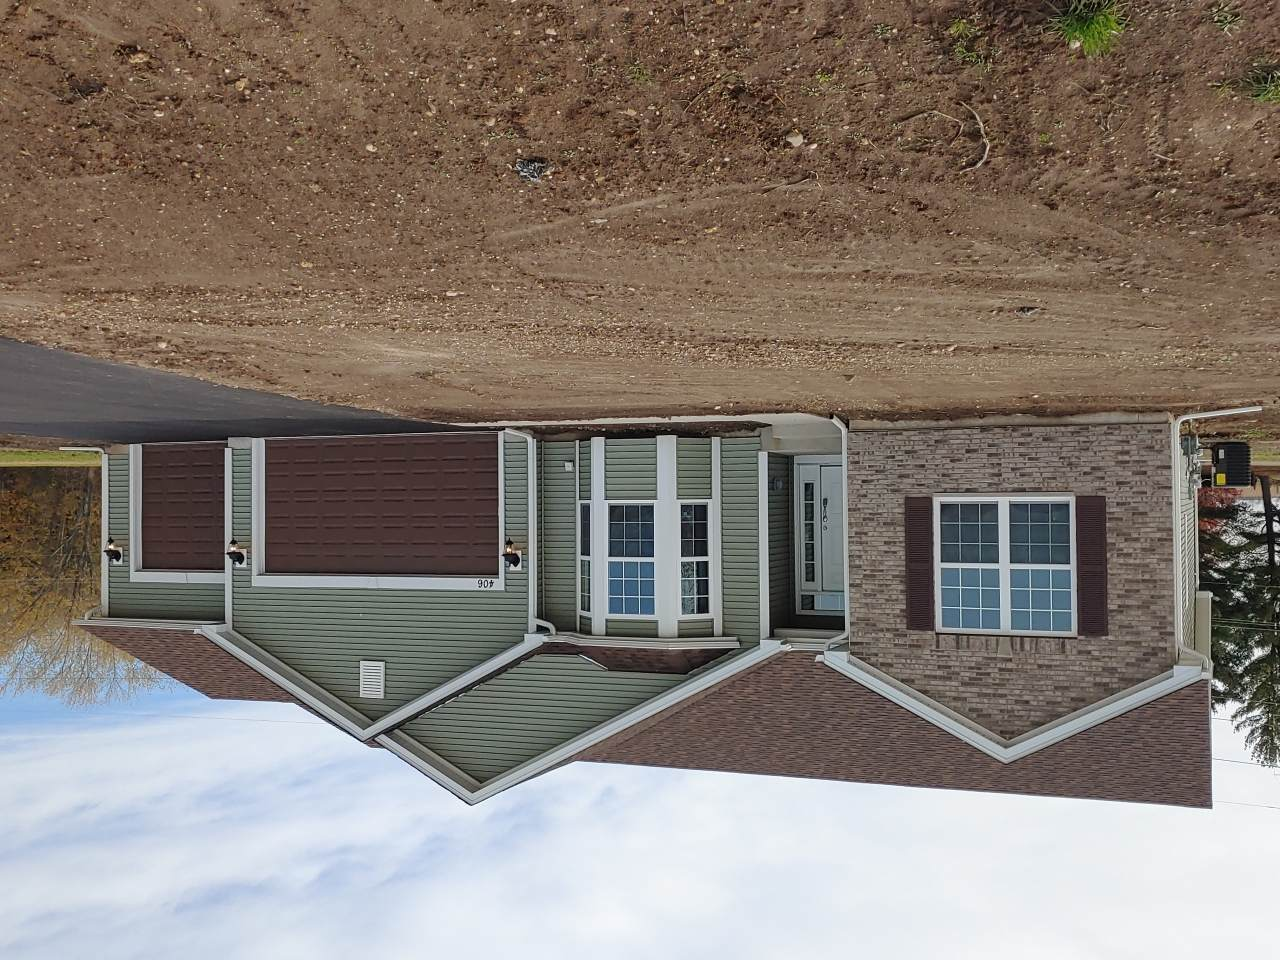 406 Chesterfield Ct - Photo 1